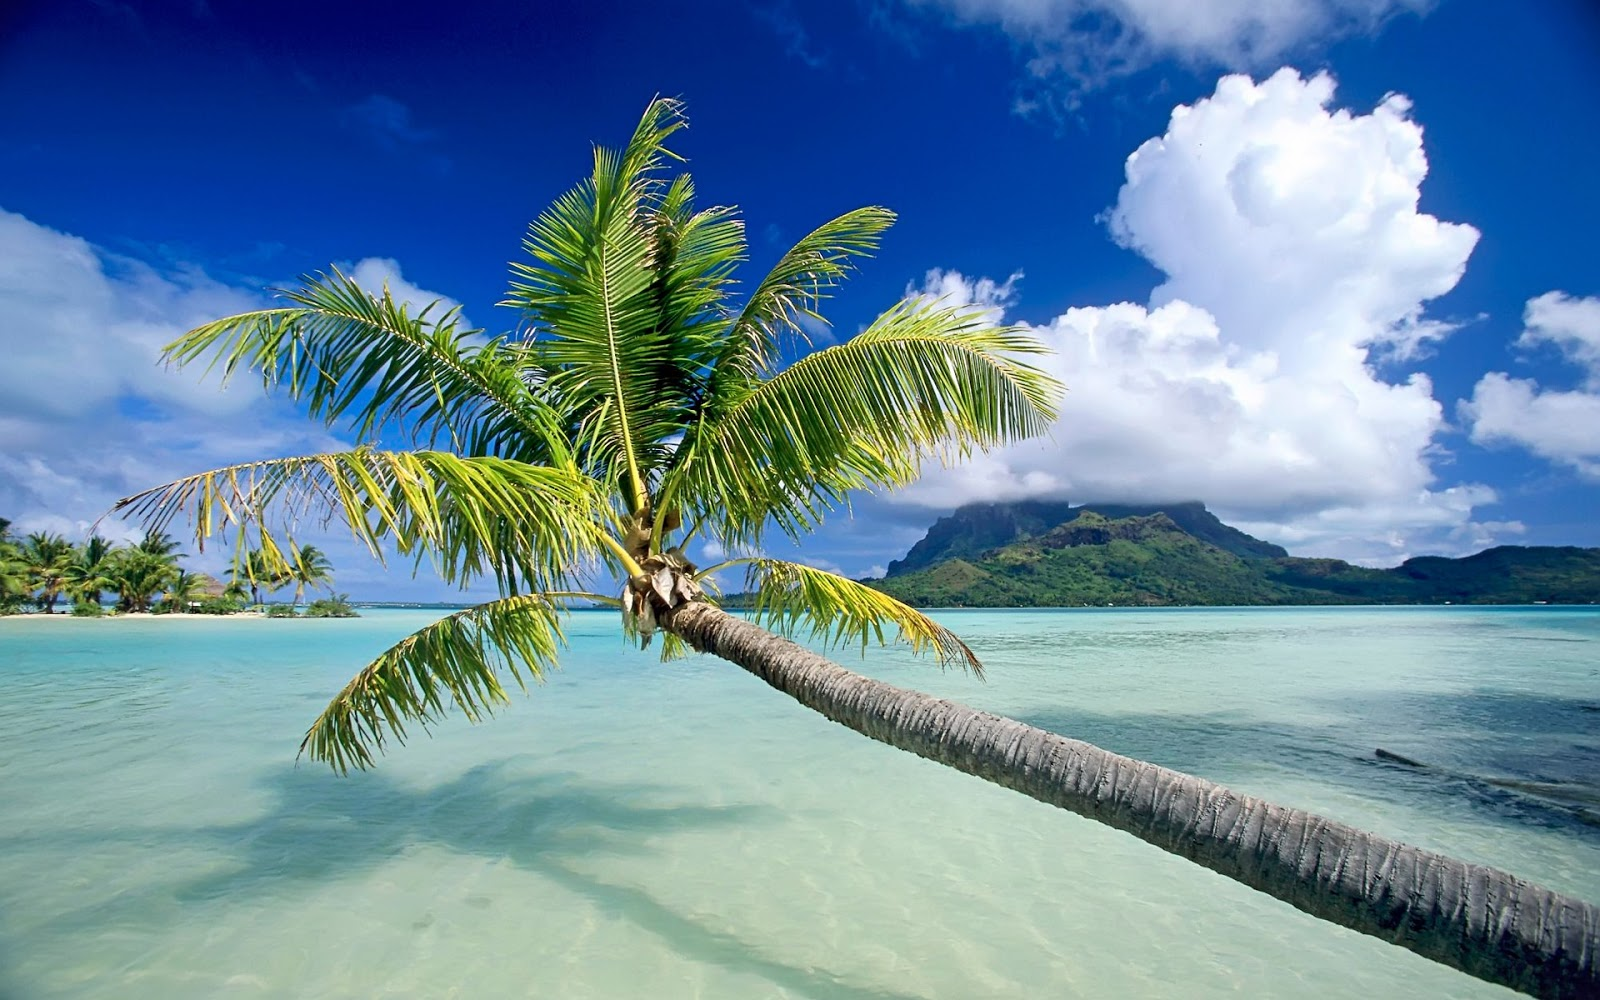 Beautiful tropical beach photos